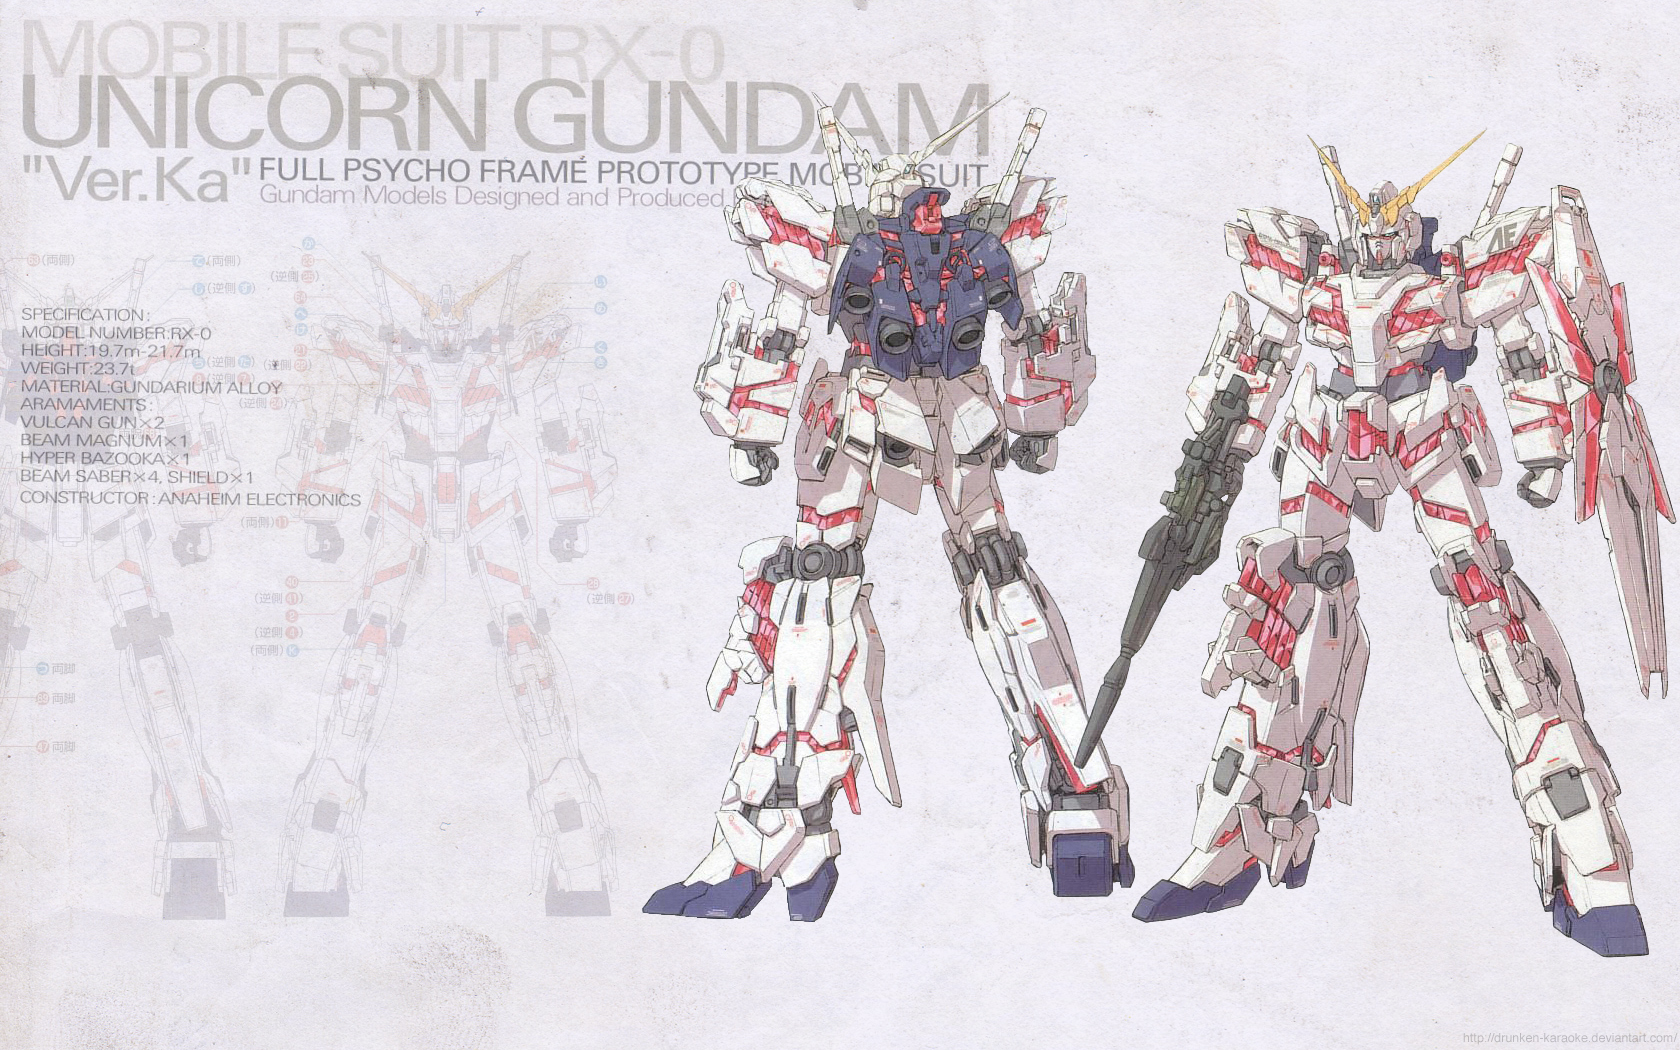 Fairy Tail Girls Wallpapers Gundam Unicorn 49 Free Wallpaper Animewp Com